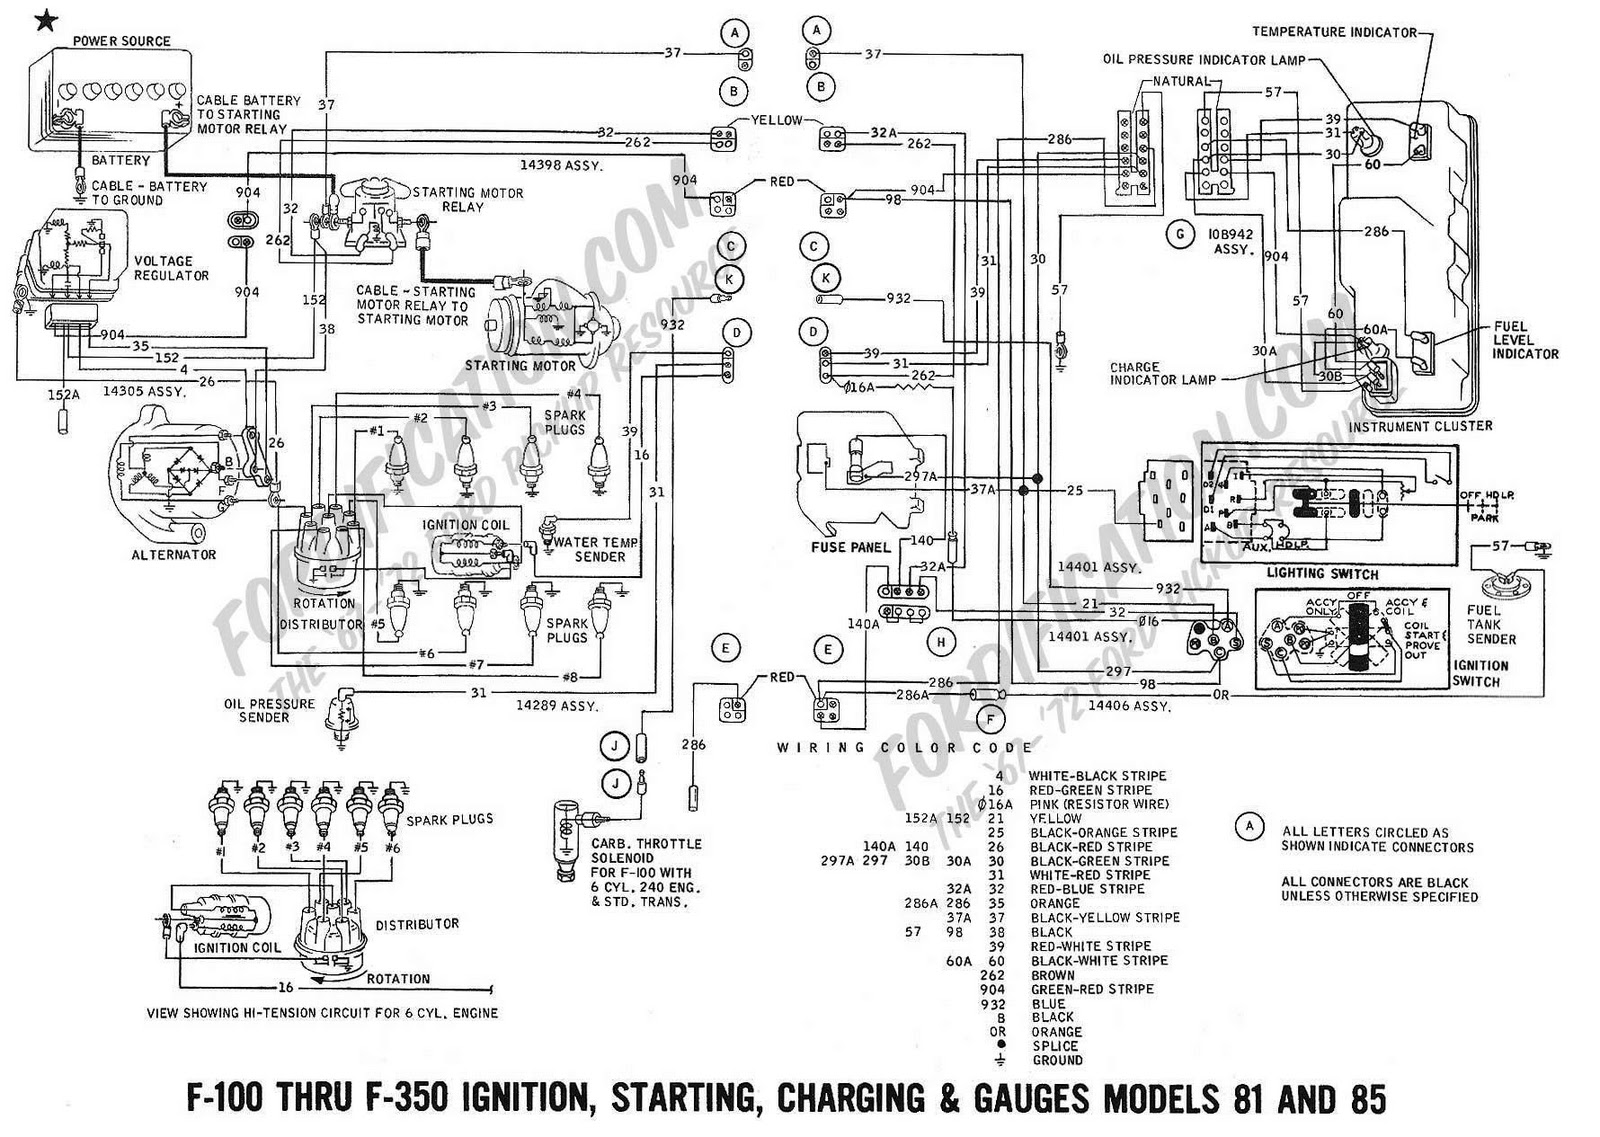 1967 Mustang Wiring And Vacuum Diagrams likewise Horns Dont Work moreover 1964 Mustang Wiring Diagrams also 1969 Ford F100 F350 Ignition Starting together with 1965 Mustang Wiring Diagrams. on 1966 mustang turn signal wiring diagram